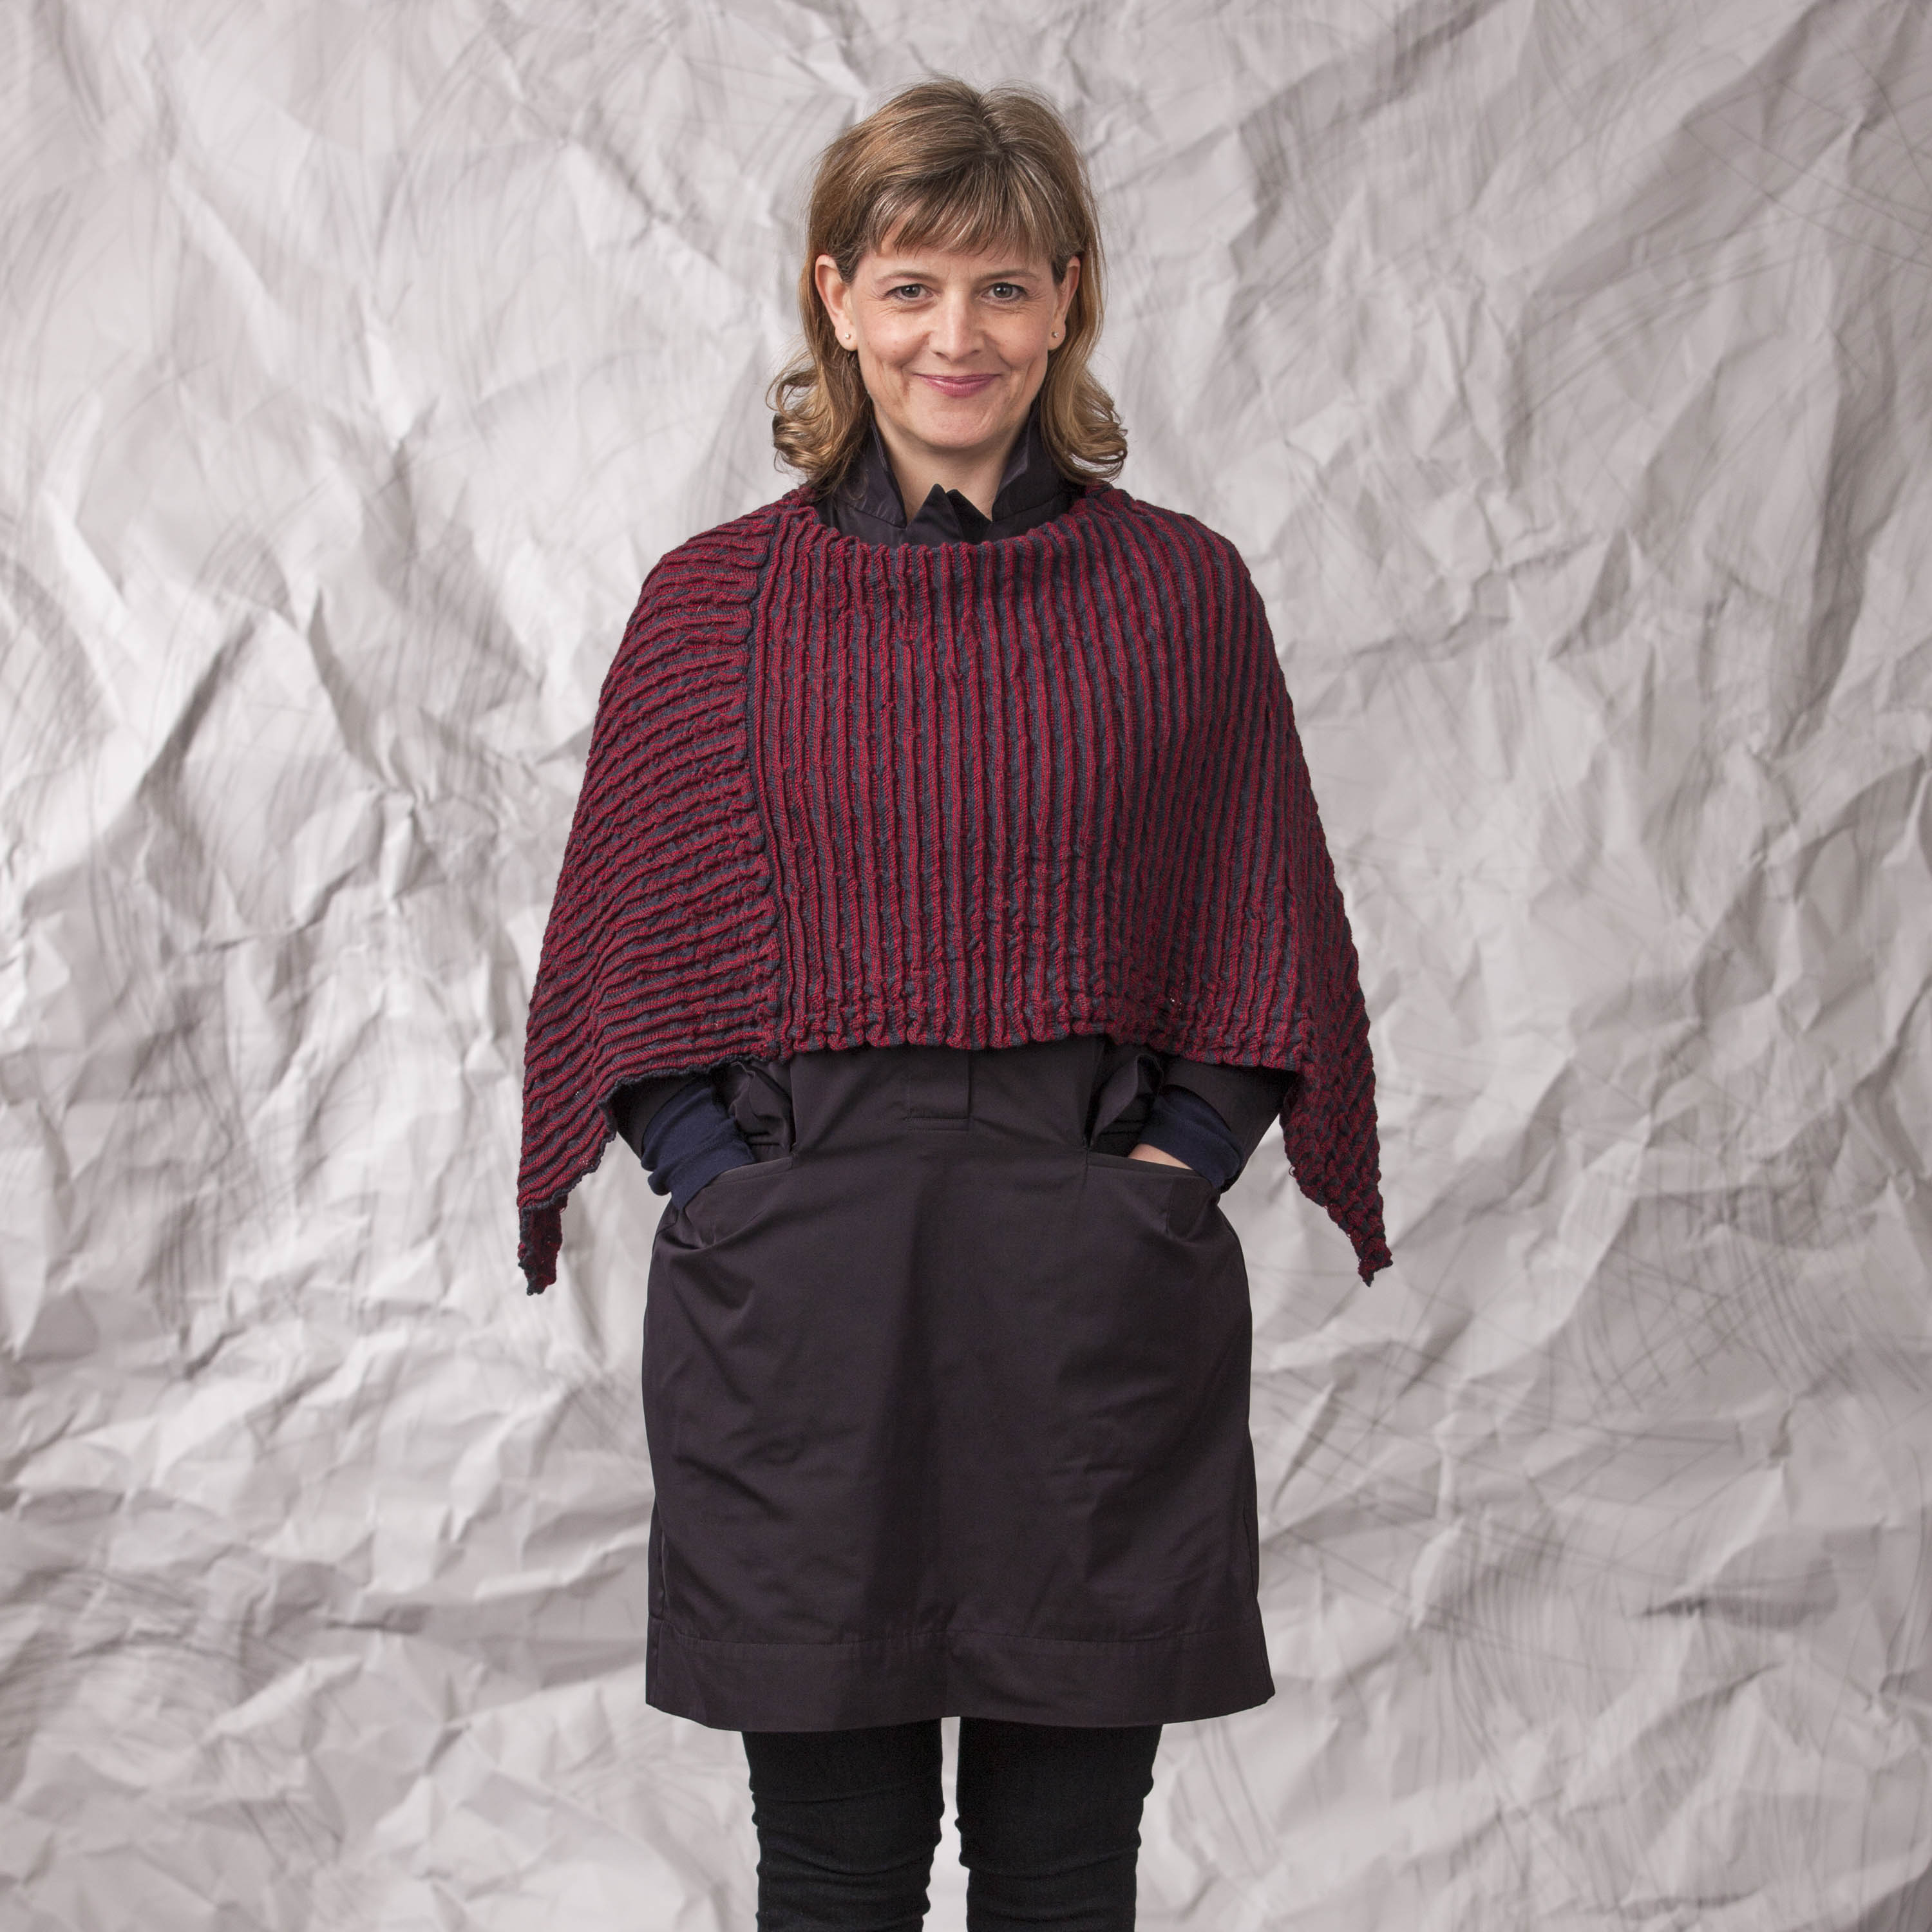 Contemporary Scottish knitwear, poncho in gently ridged fabric in dark berry coloured. Worn by a woman, over a navy shirt dress